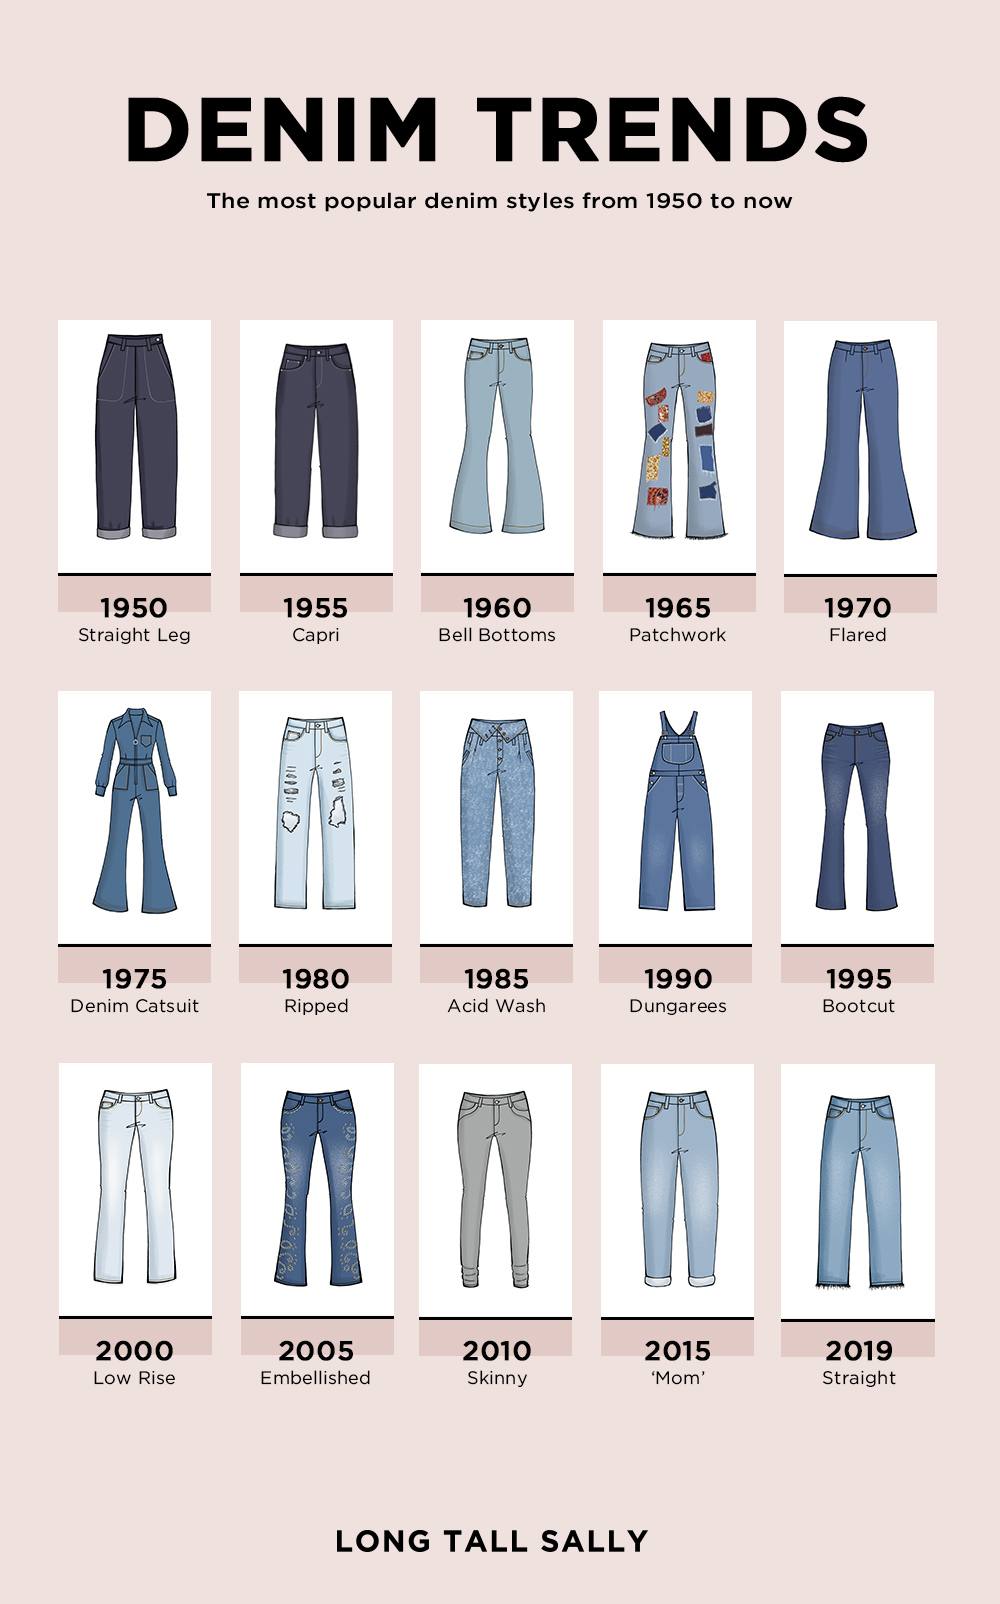 The Most Popular Denim Styles From 1950 To 2019